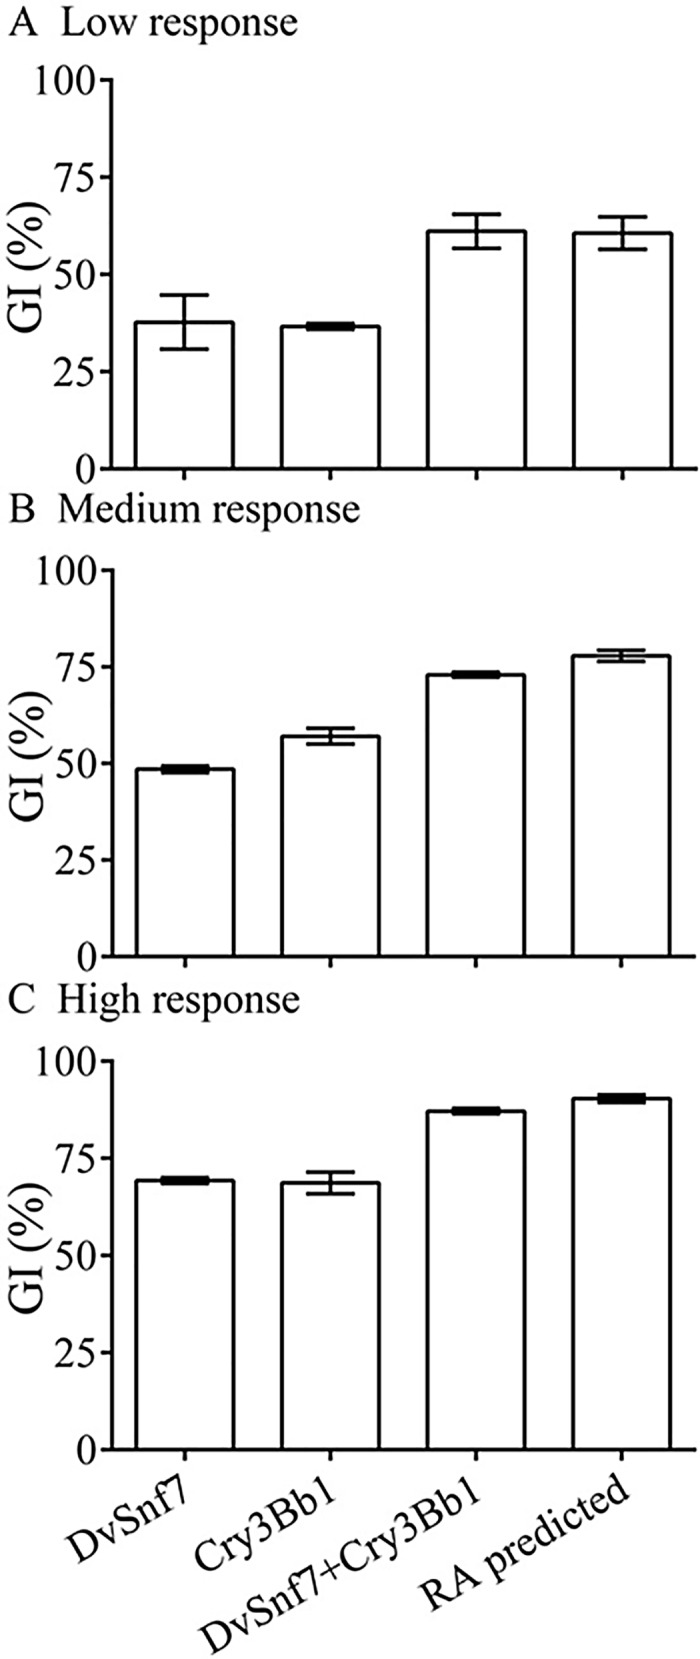 Observed growth inhibition (GI) with standard errors (SEs) of Cry3Bb1 and DvSnf7 and their mixtures at levels of low response (A), medium response (B) and high response (C) in 12-days diet incorporation bioassays. The predicted GI of the mixture in each level was calculated based on the GIs of two individuals using the RA model. The average GI and associated SEs were calculated from three replicates.